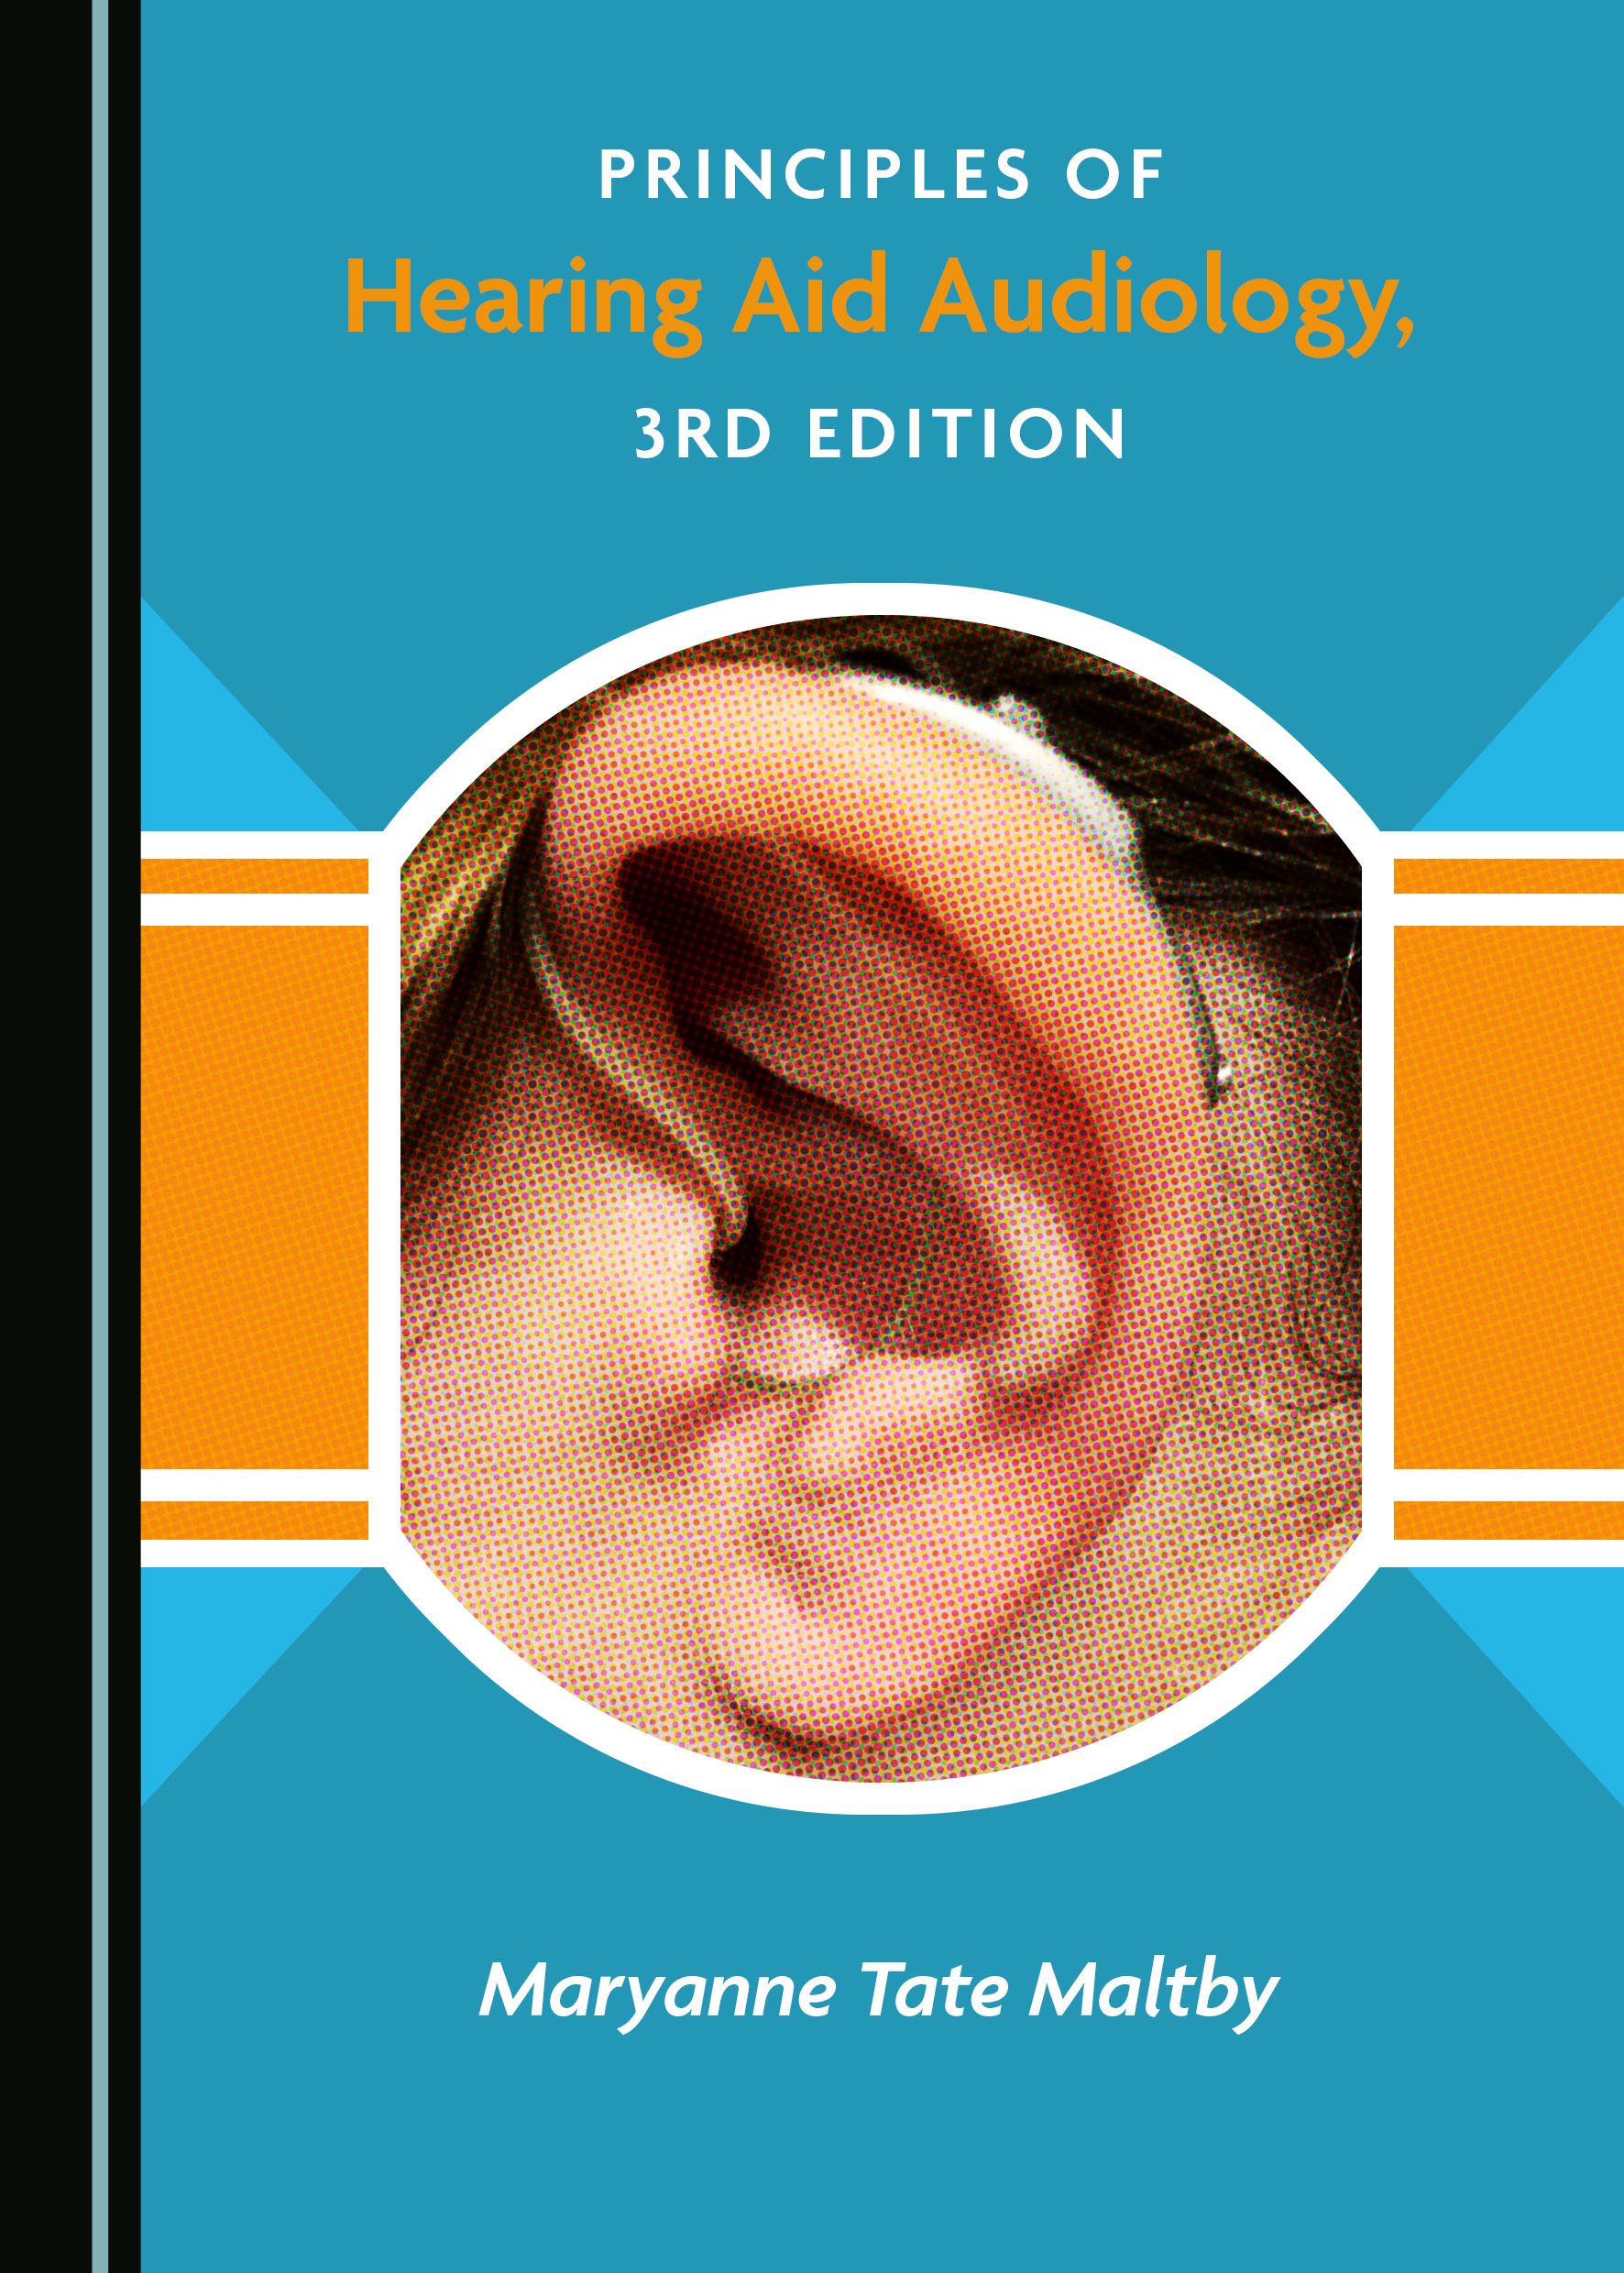 Principles of Hearing Aid Audiology, 3rd Edition